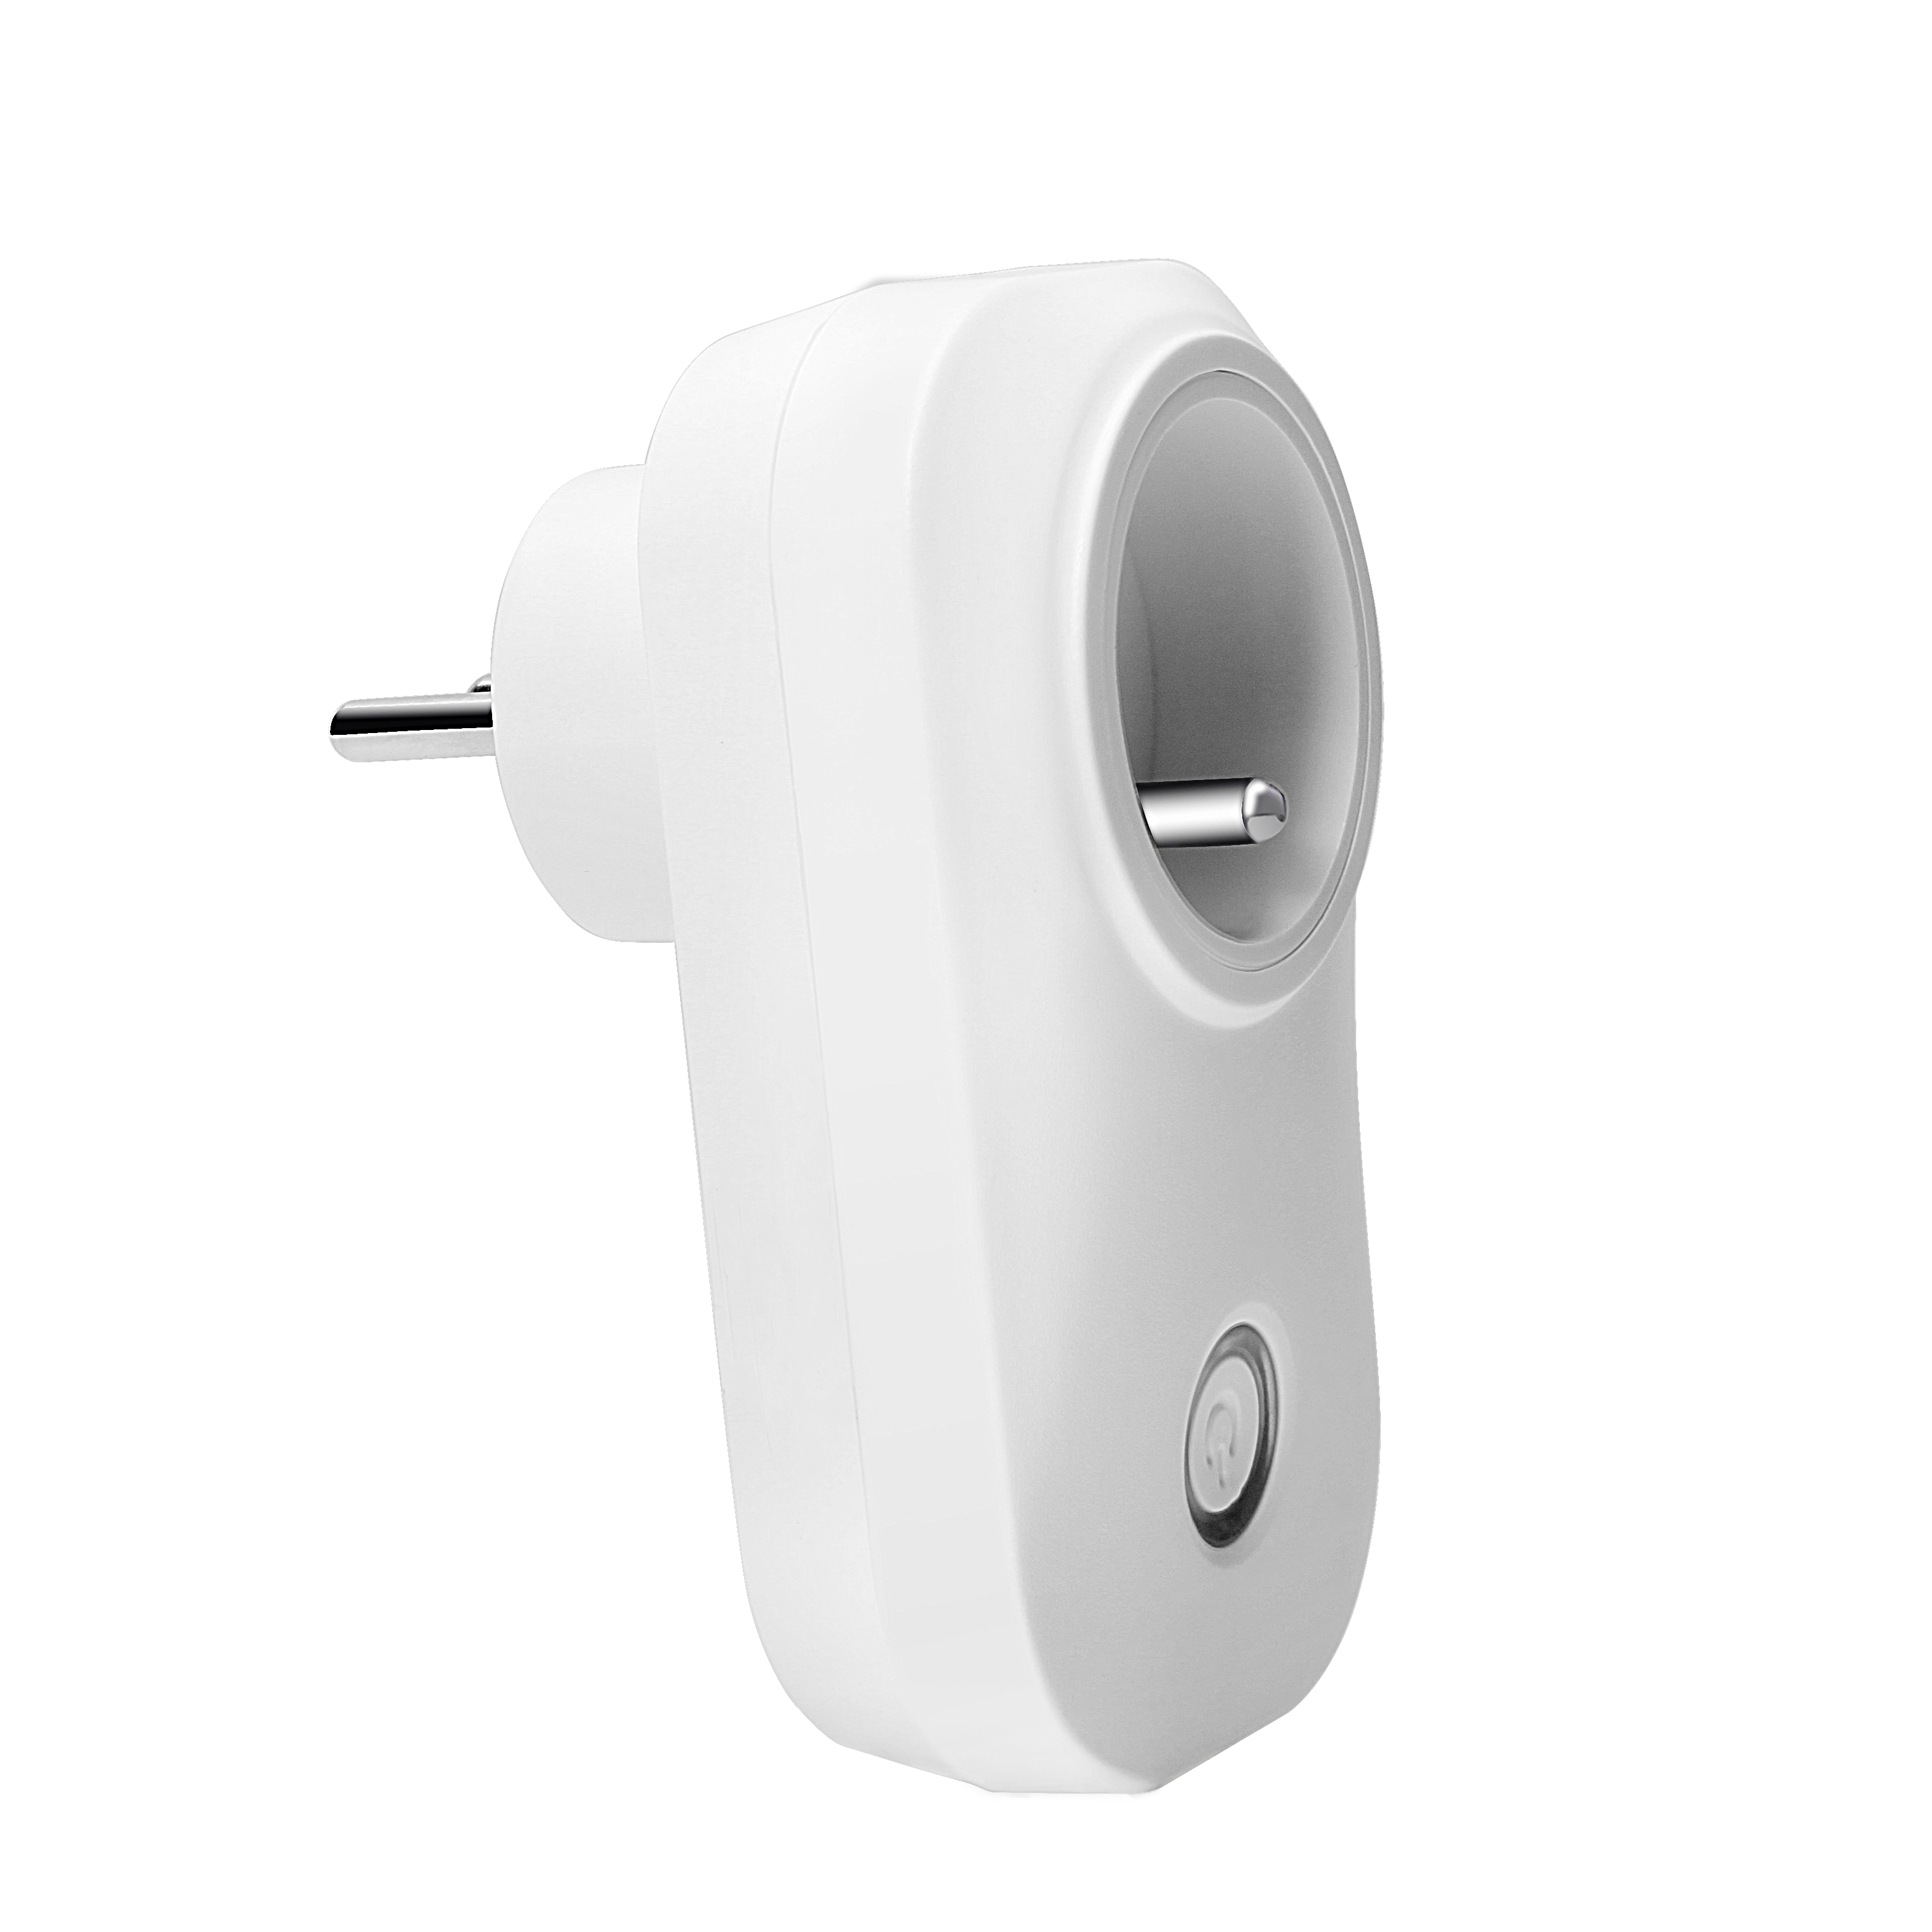 WIFI Smart Plug for French